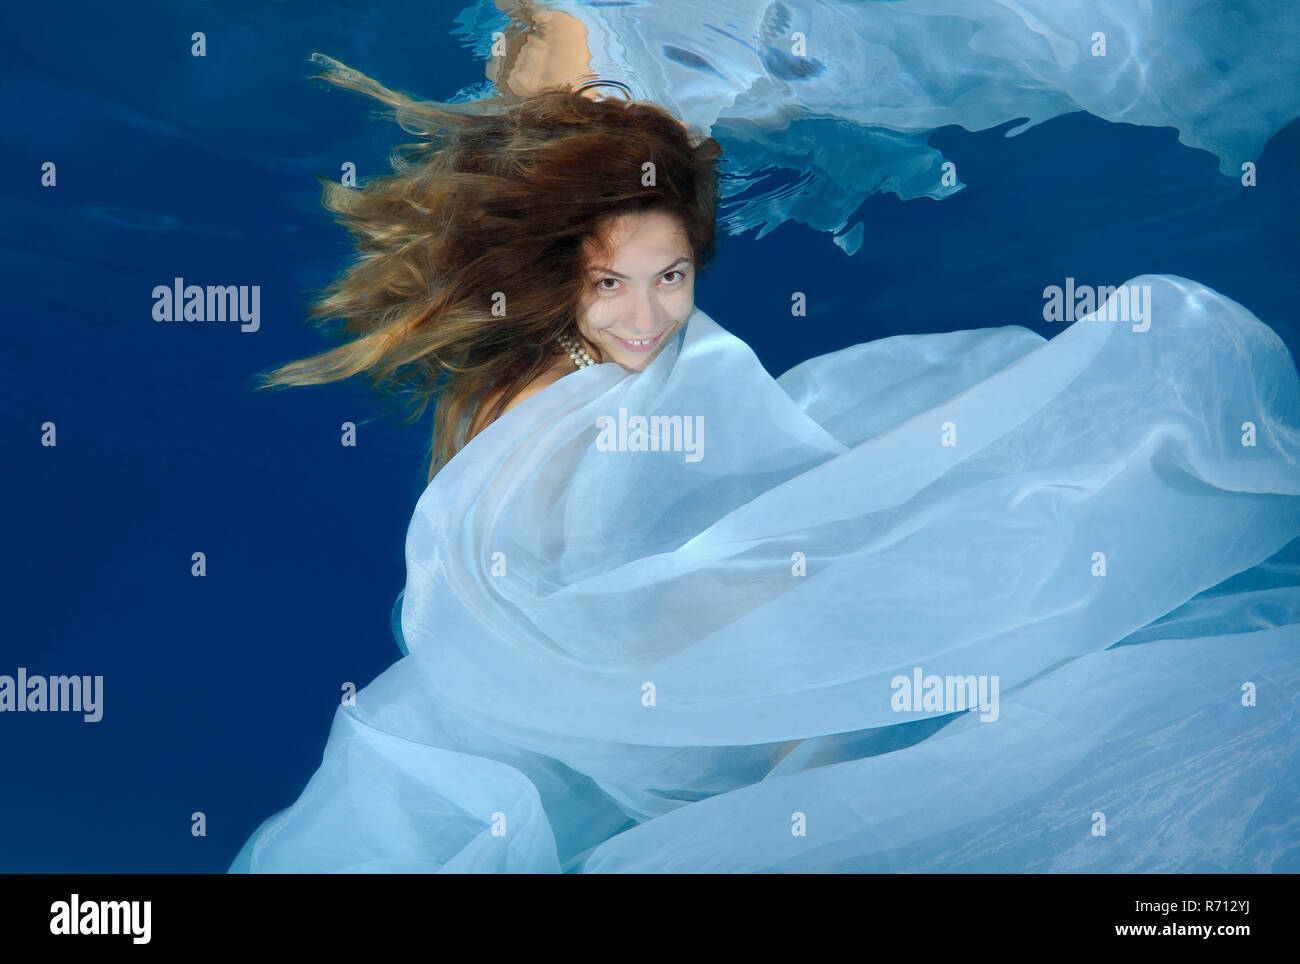 Woman in a long white dress under water, underwater fashion